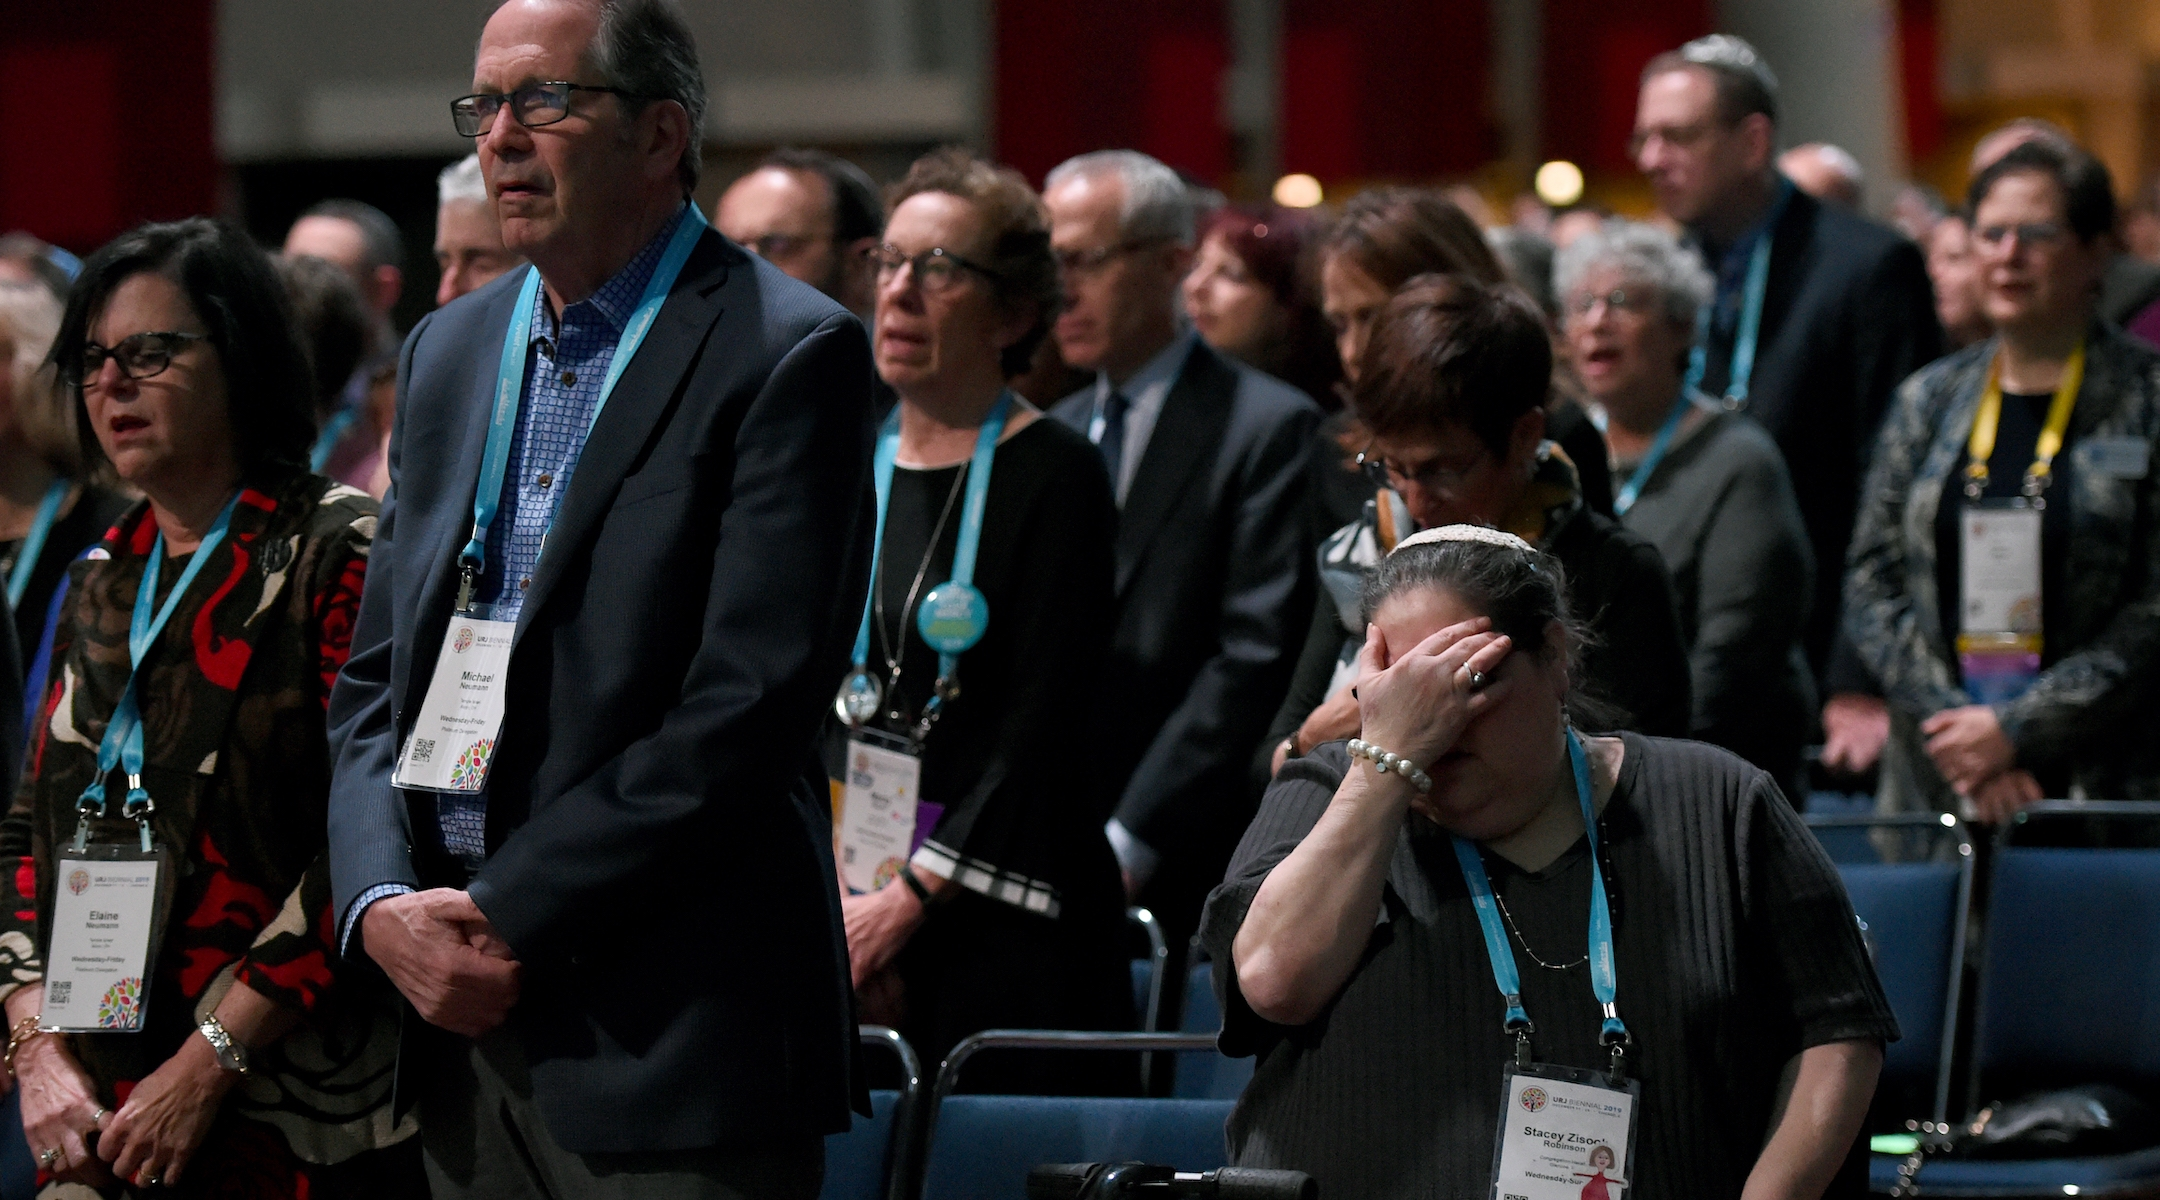 Worshippers at the Friday night service. (Rob Dicker/Union for Reform Judaism)